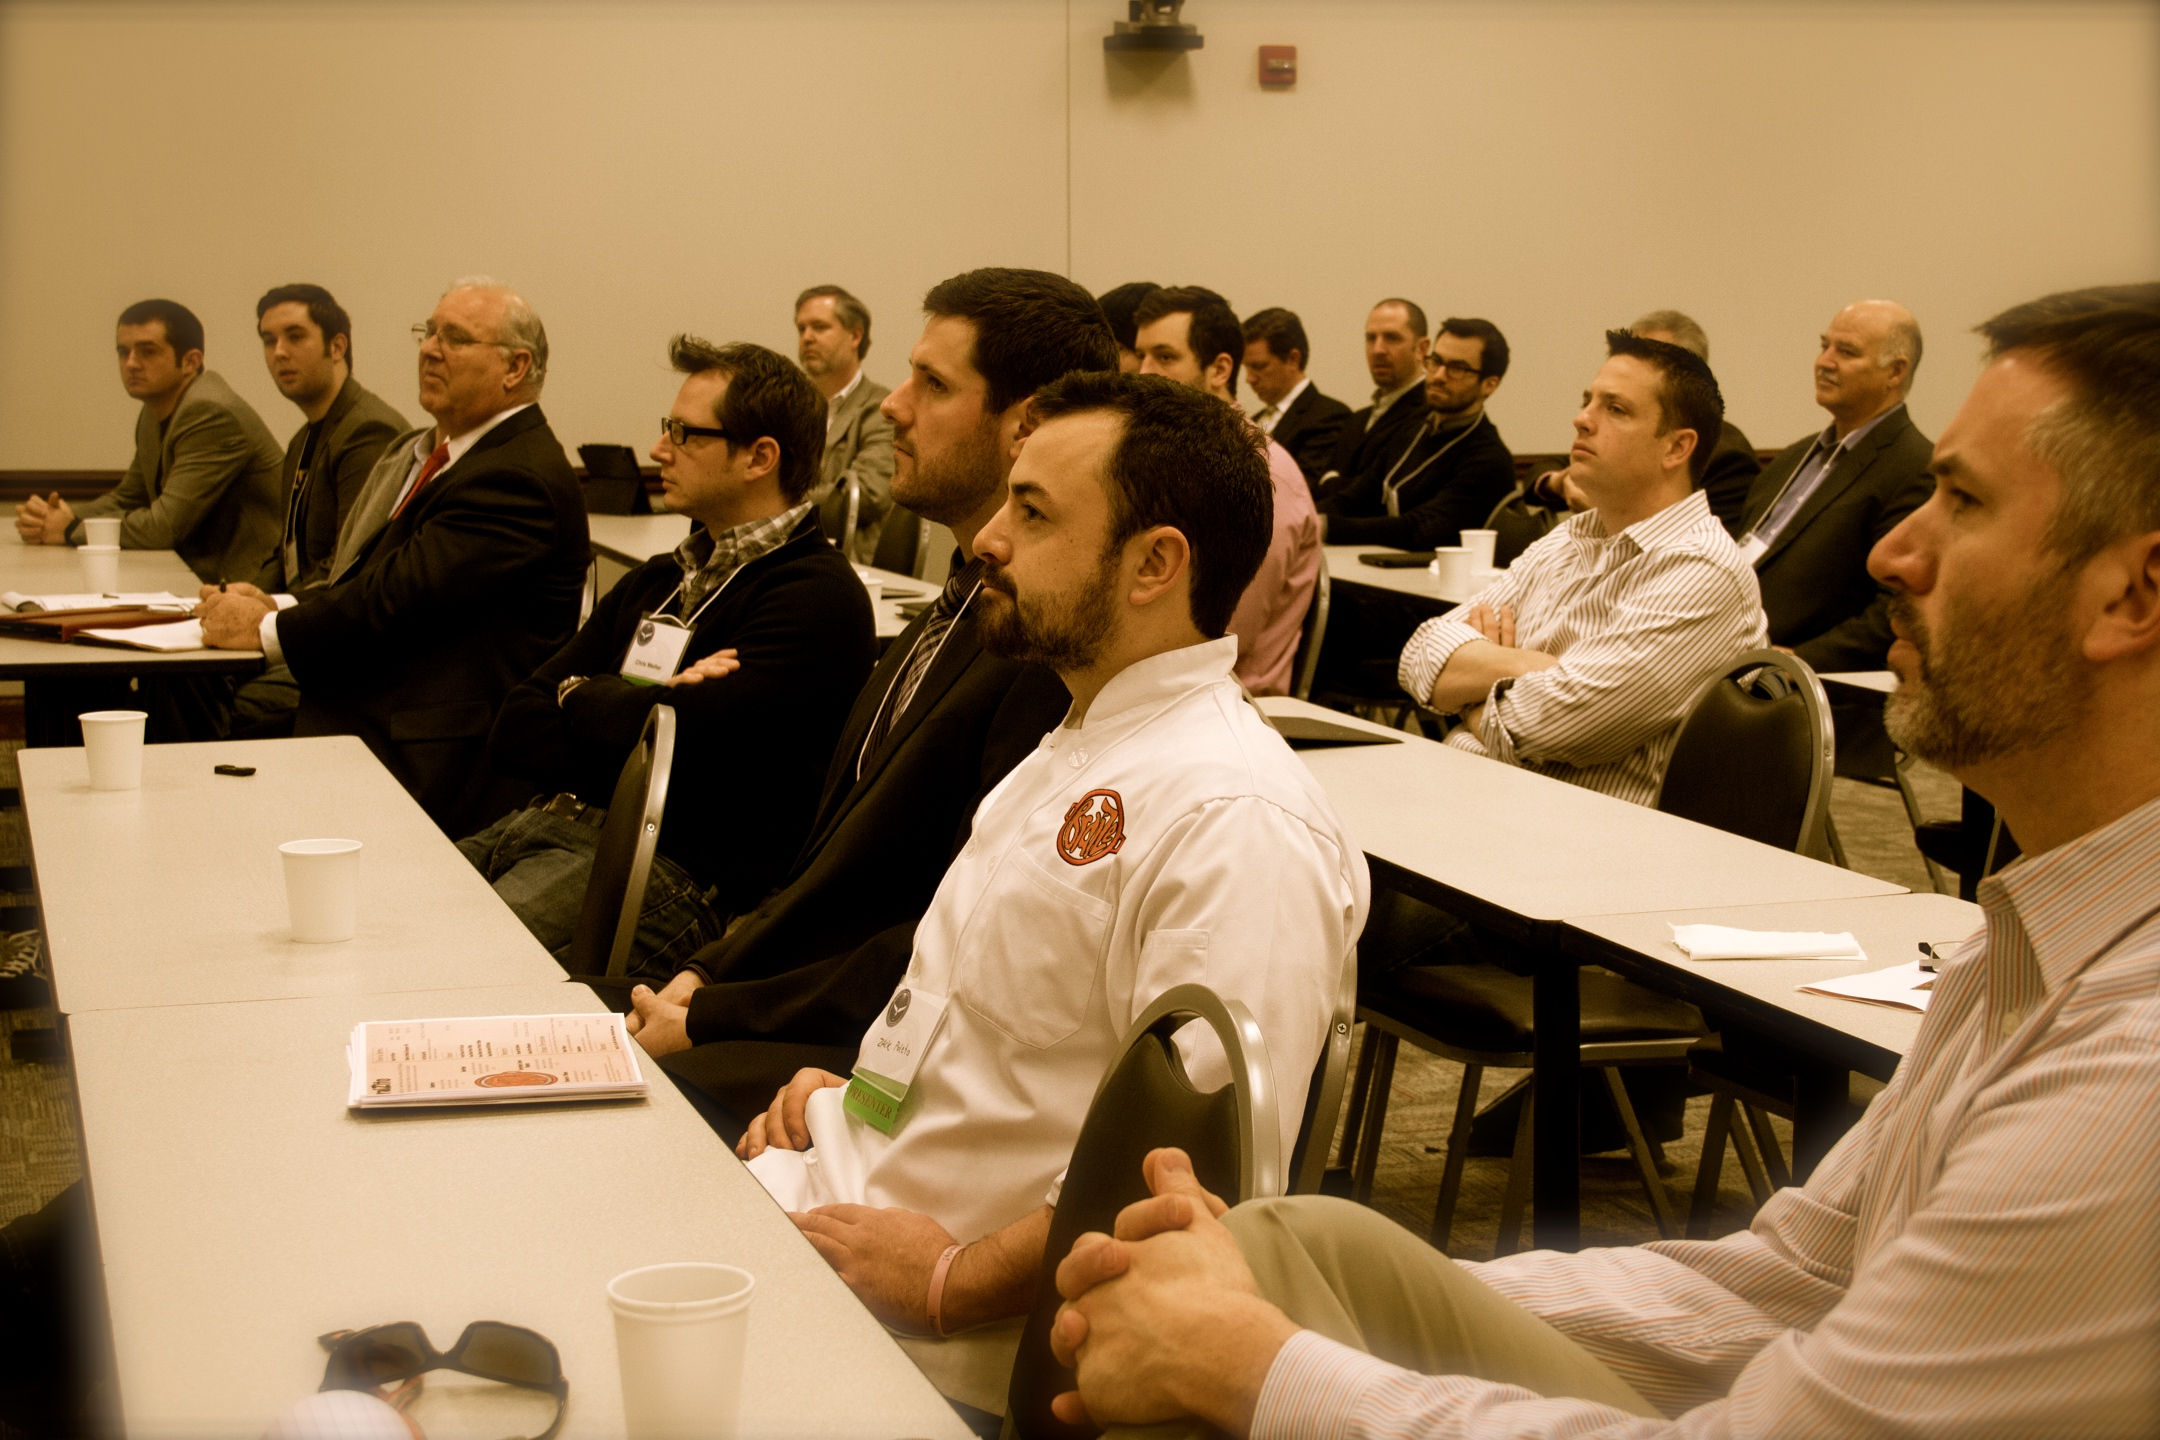 Bloomington Normal Angel Investor Network 2014 Q1 shot of the crowd